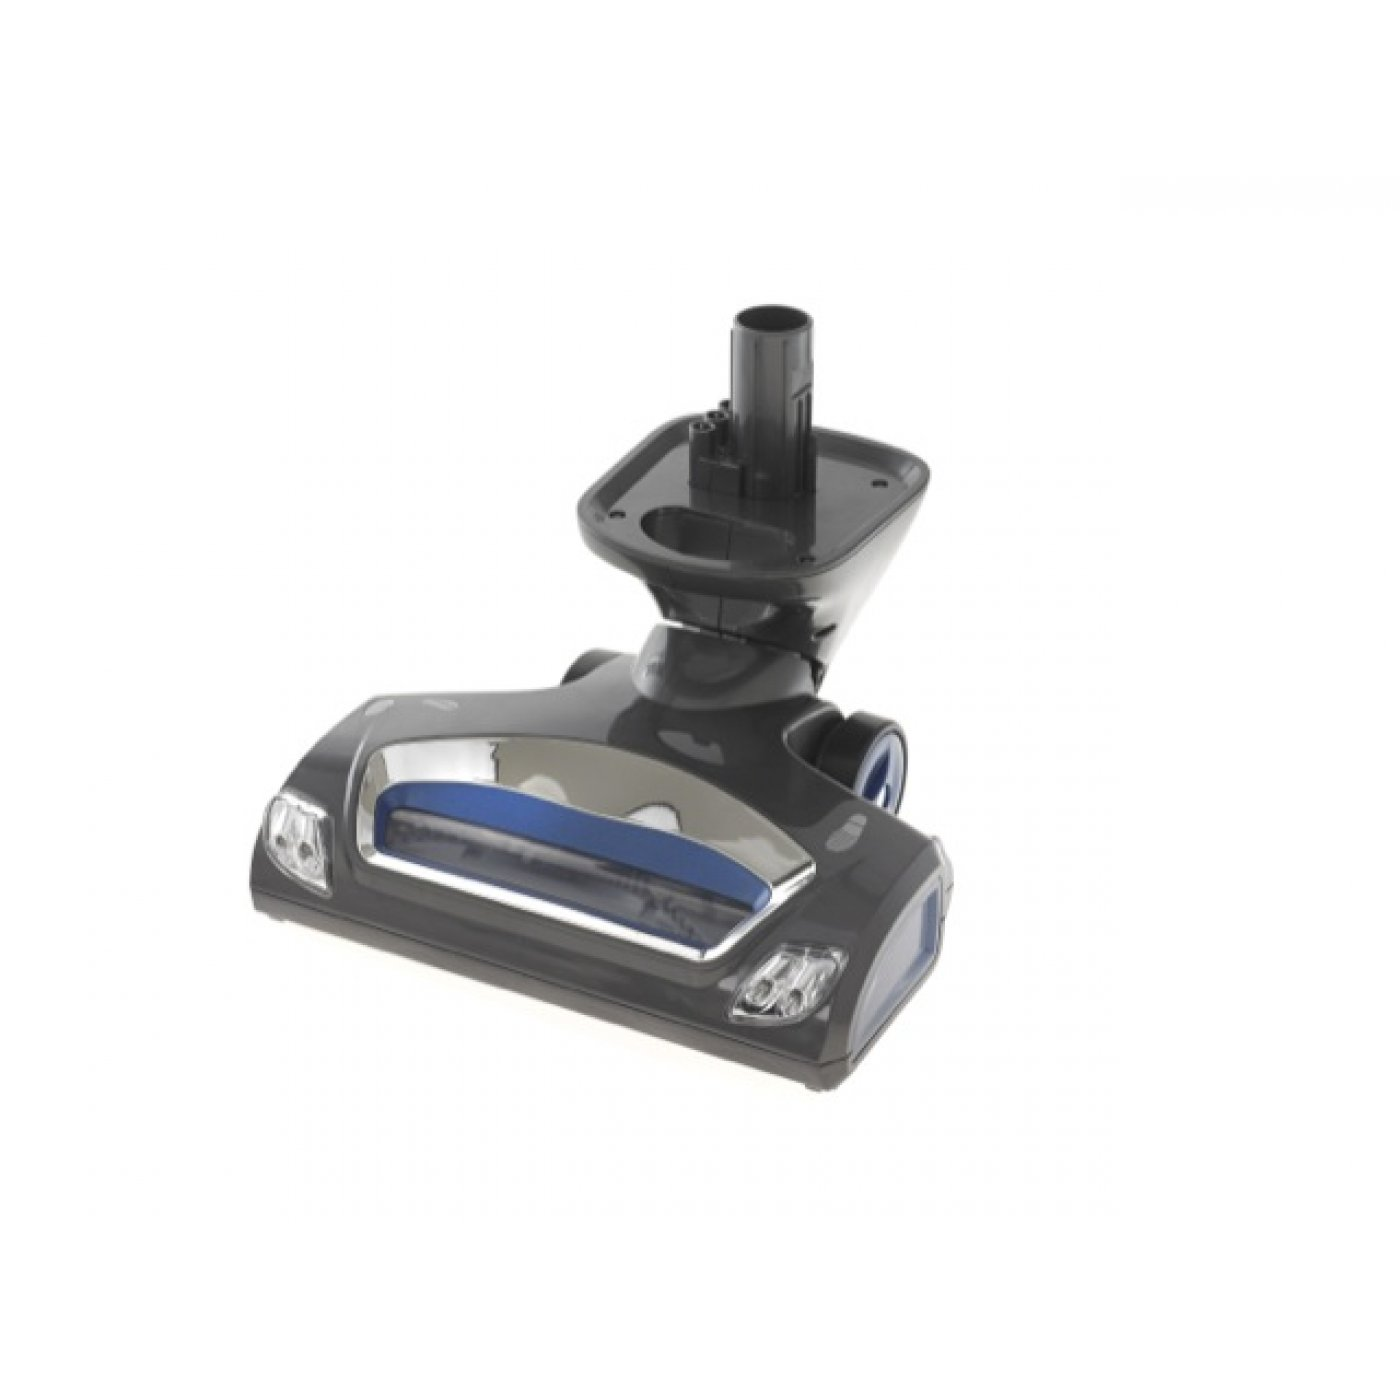 Floor Nozzle For Nv500ukp Shark Innovative Vacuum